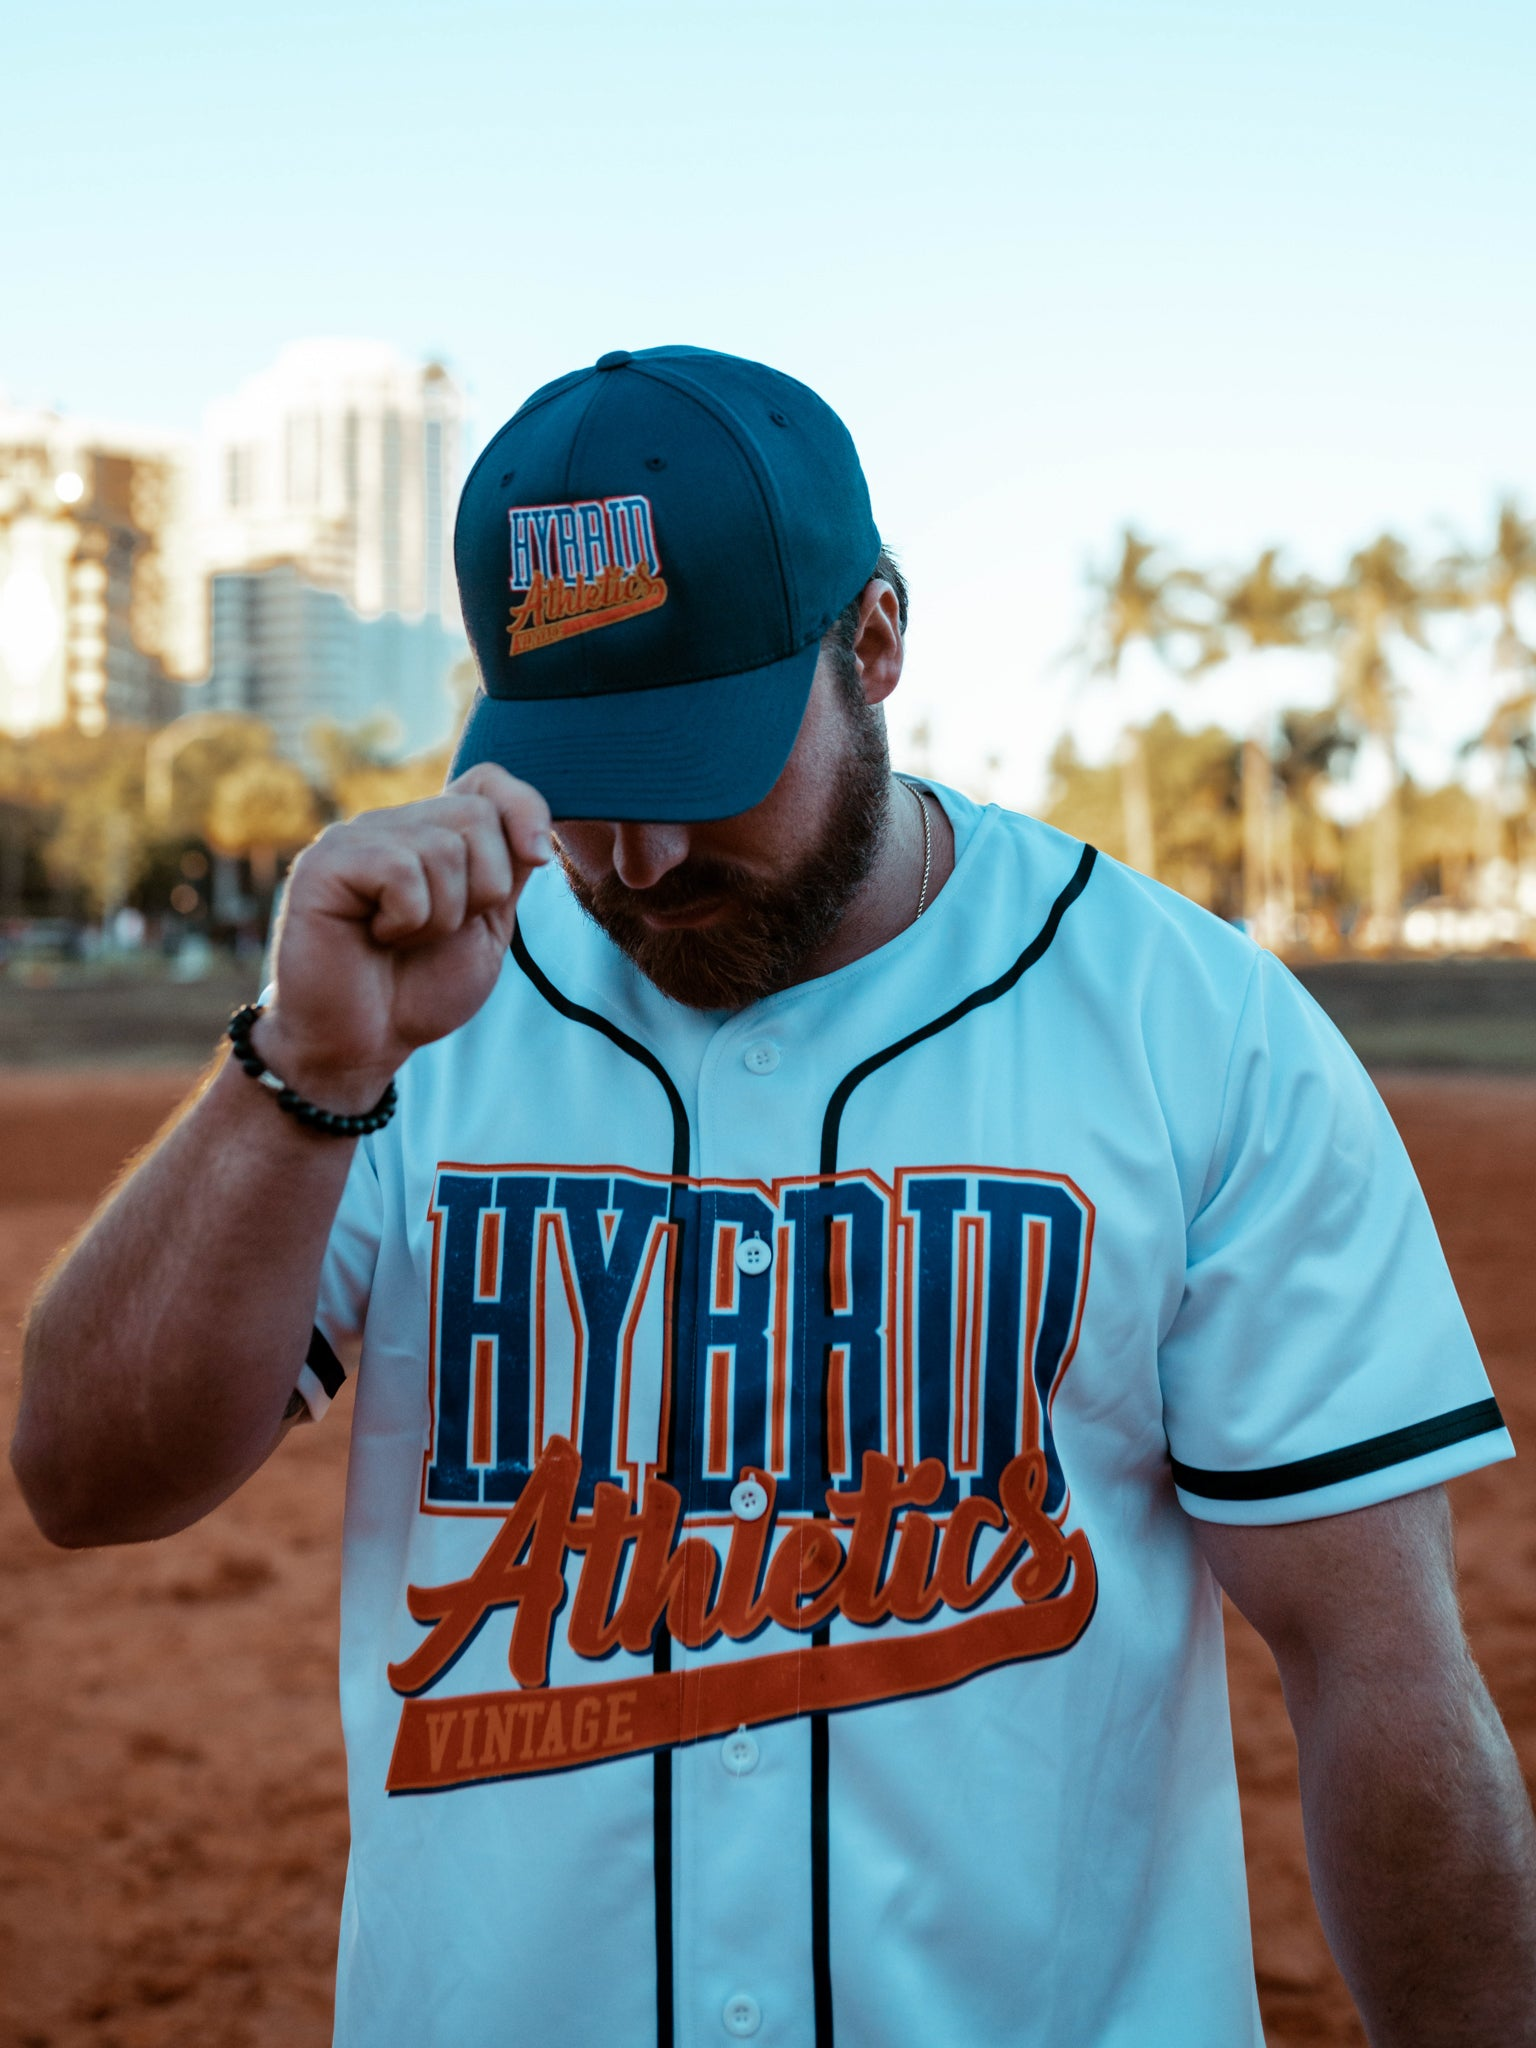 Hybrid Athletics Baseball Jersey